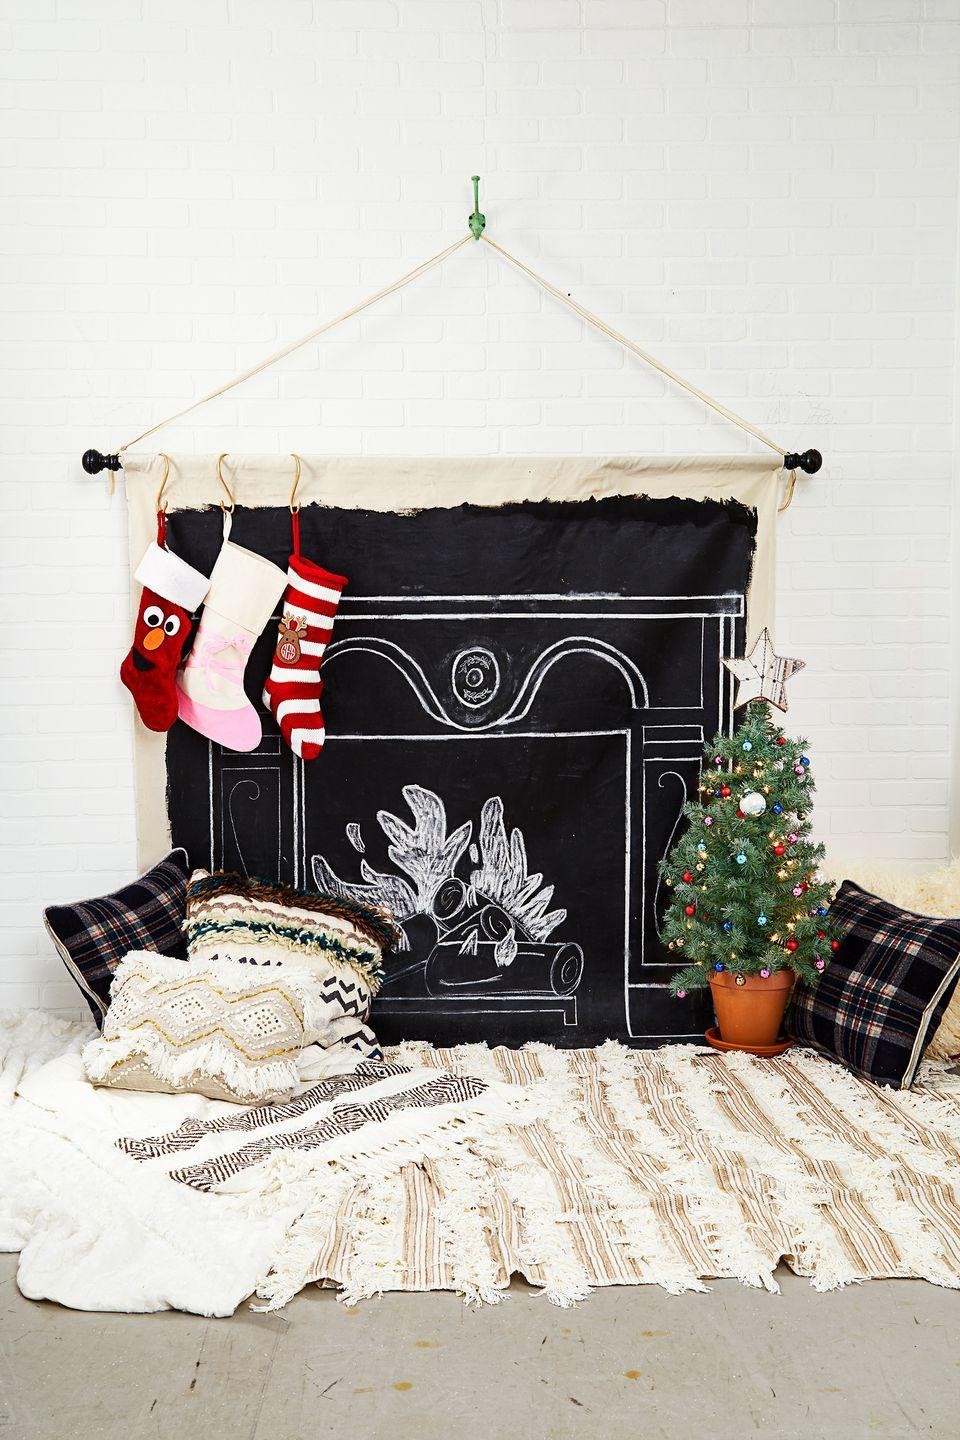 <p>Draw a fake fireplace with chalk on canvas, hang it from the wall, add stockings, and then surround it with floor cushions and blankets. Then place a tiny tree in a small planter to create a cozy nook. This will be a total lifesaver if you live in a small apartment but still want to go big on the Christmas decor. </p>